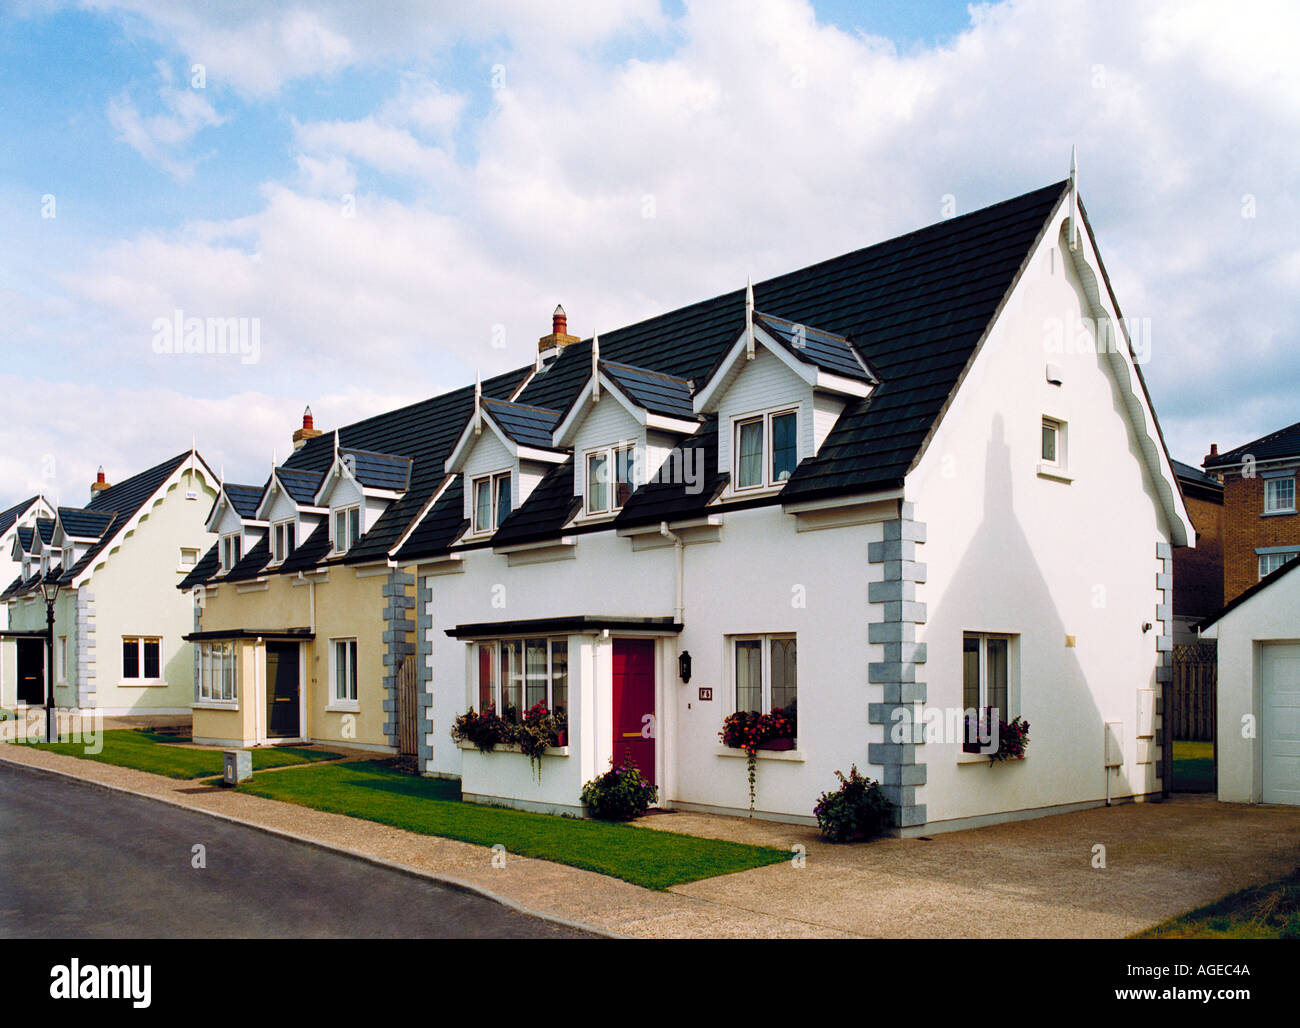 Modern bungalow cottage style houses in a housing development in ireland